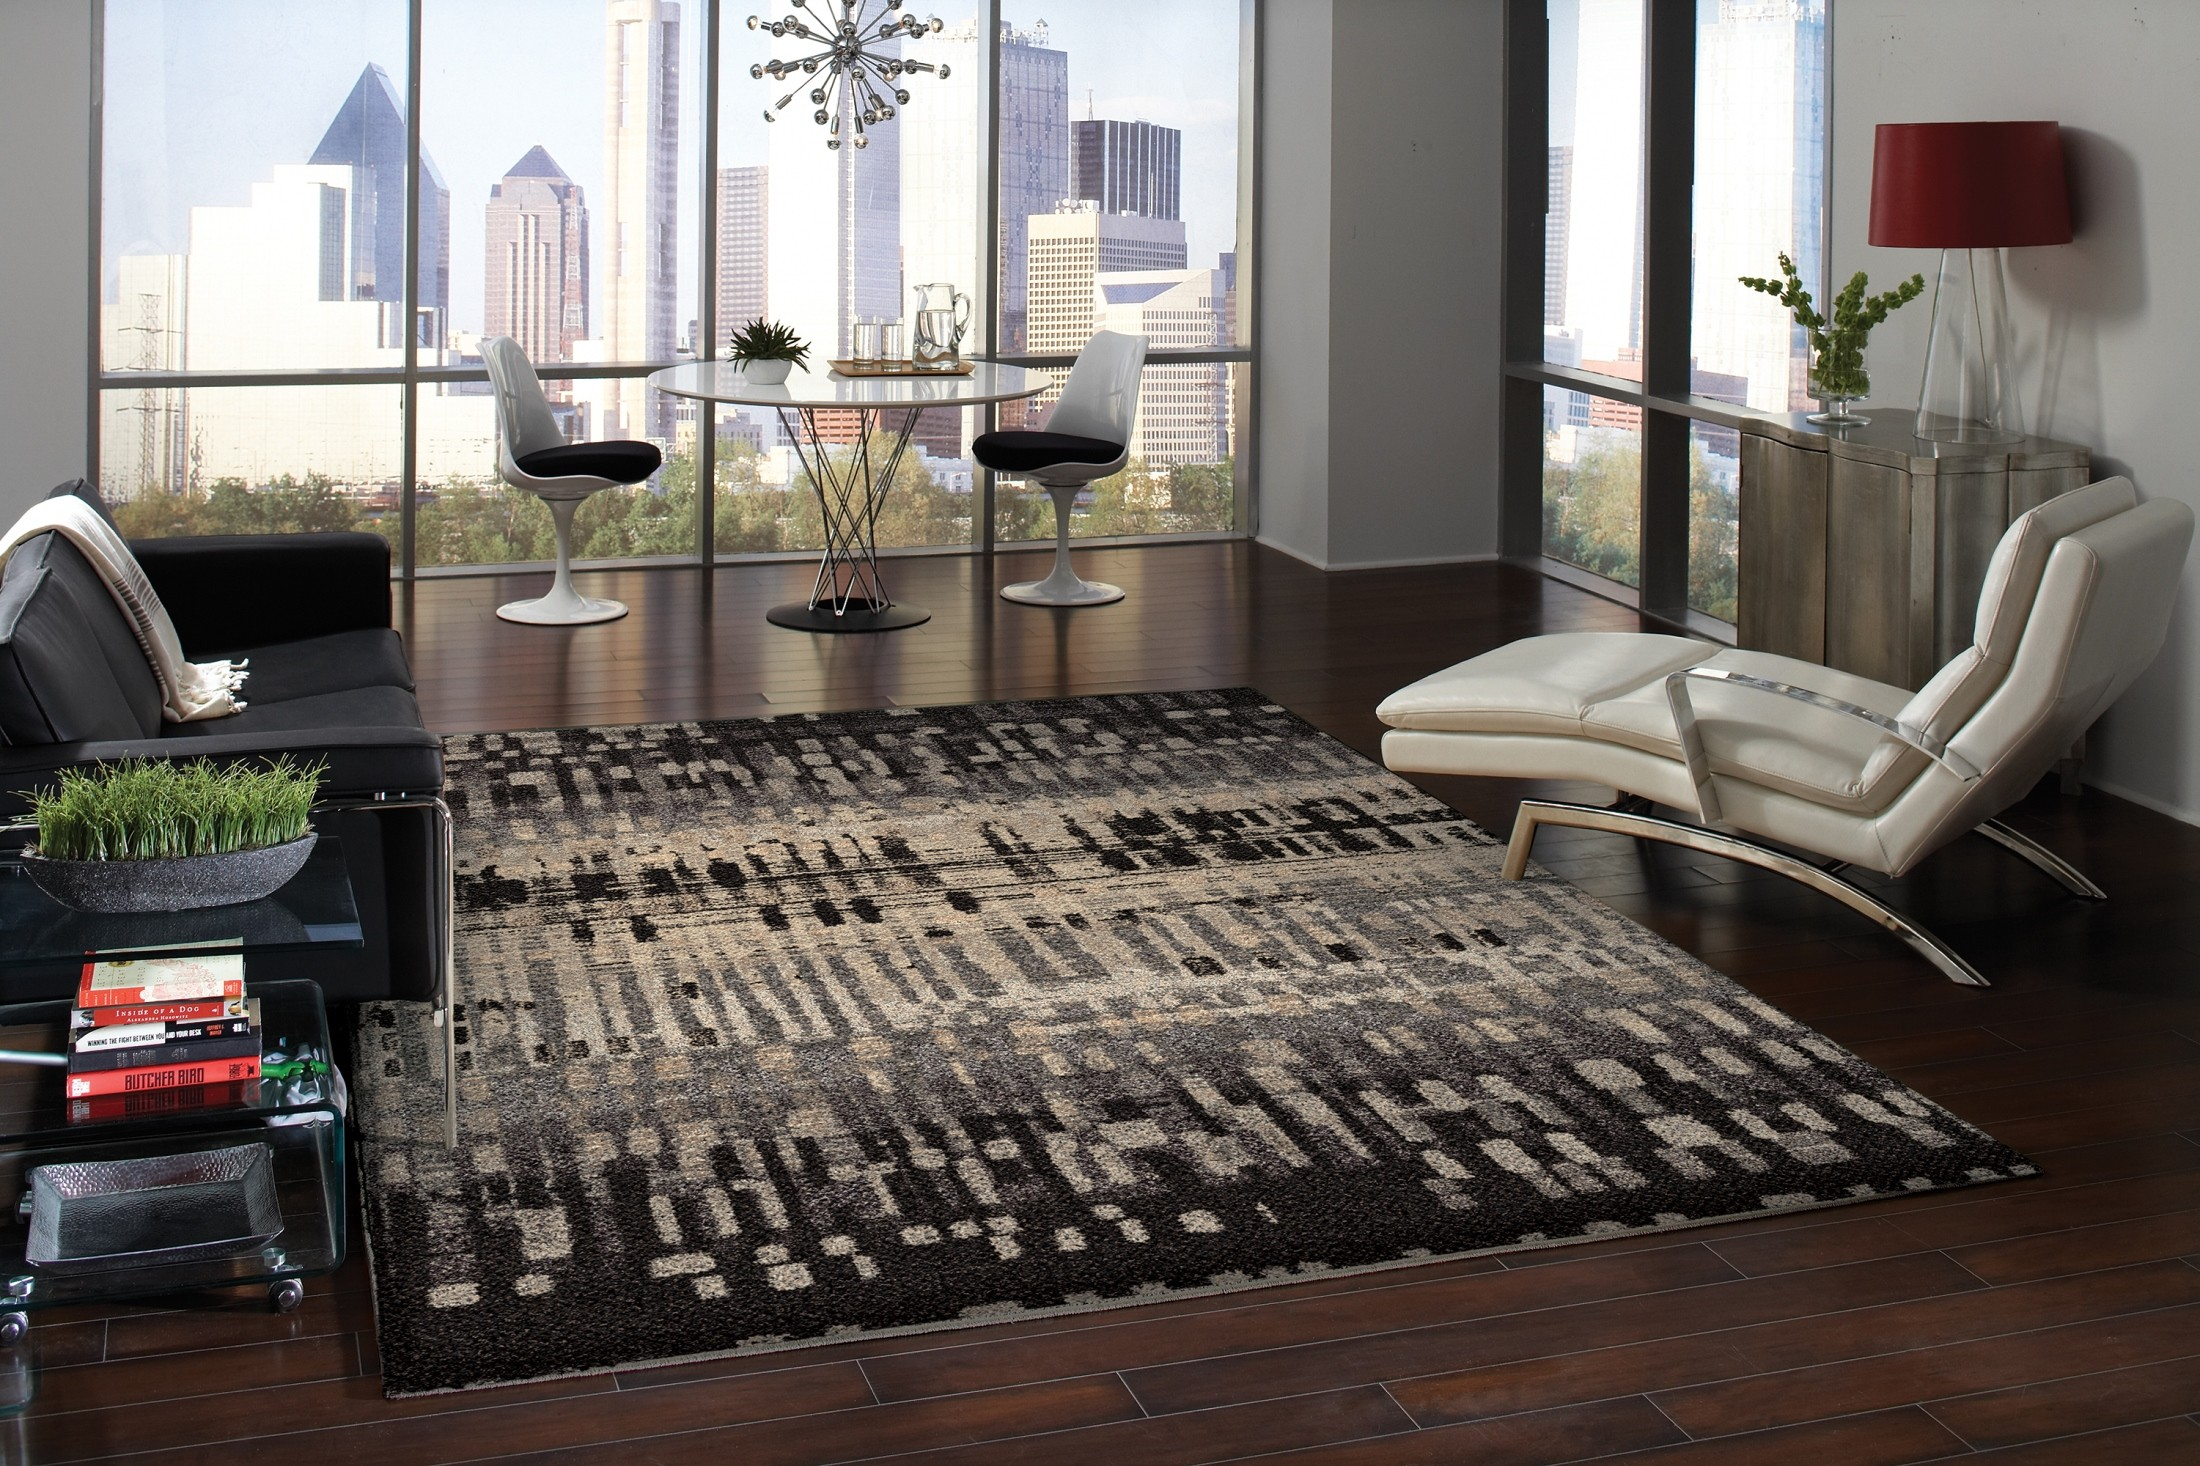 Metropolitan City Drizzle Slate Large 130 Rug From Orian 1673 8x11 Coleman Furniture